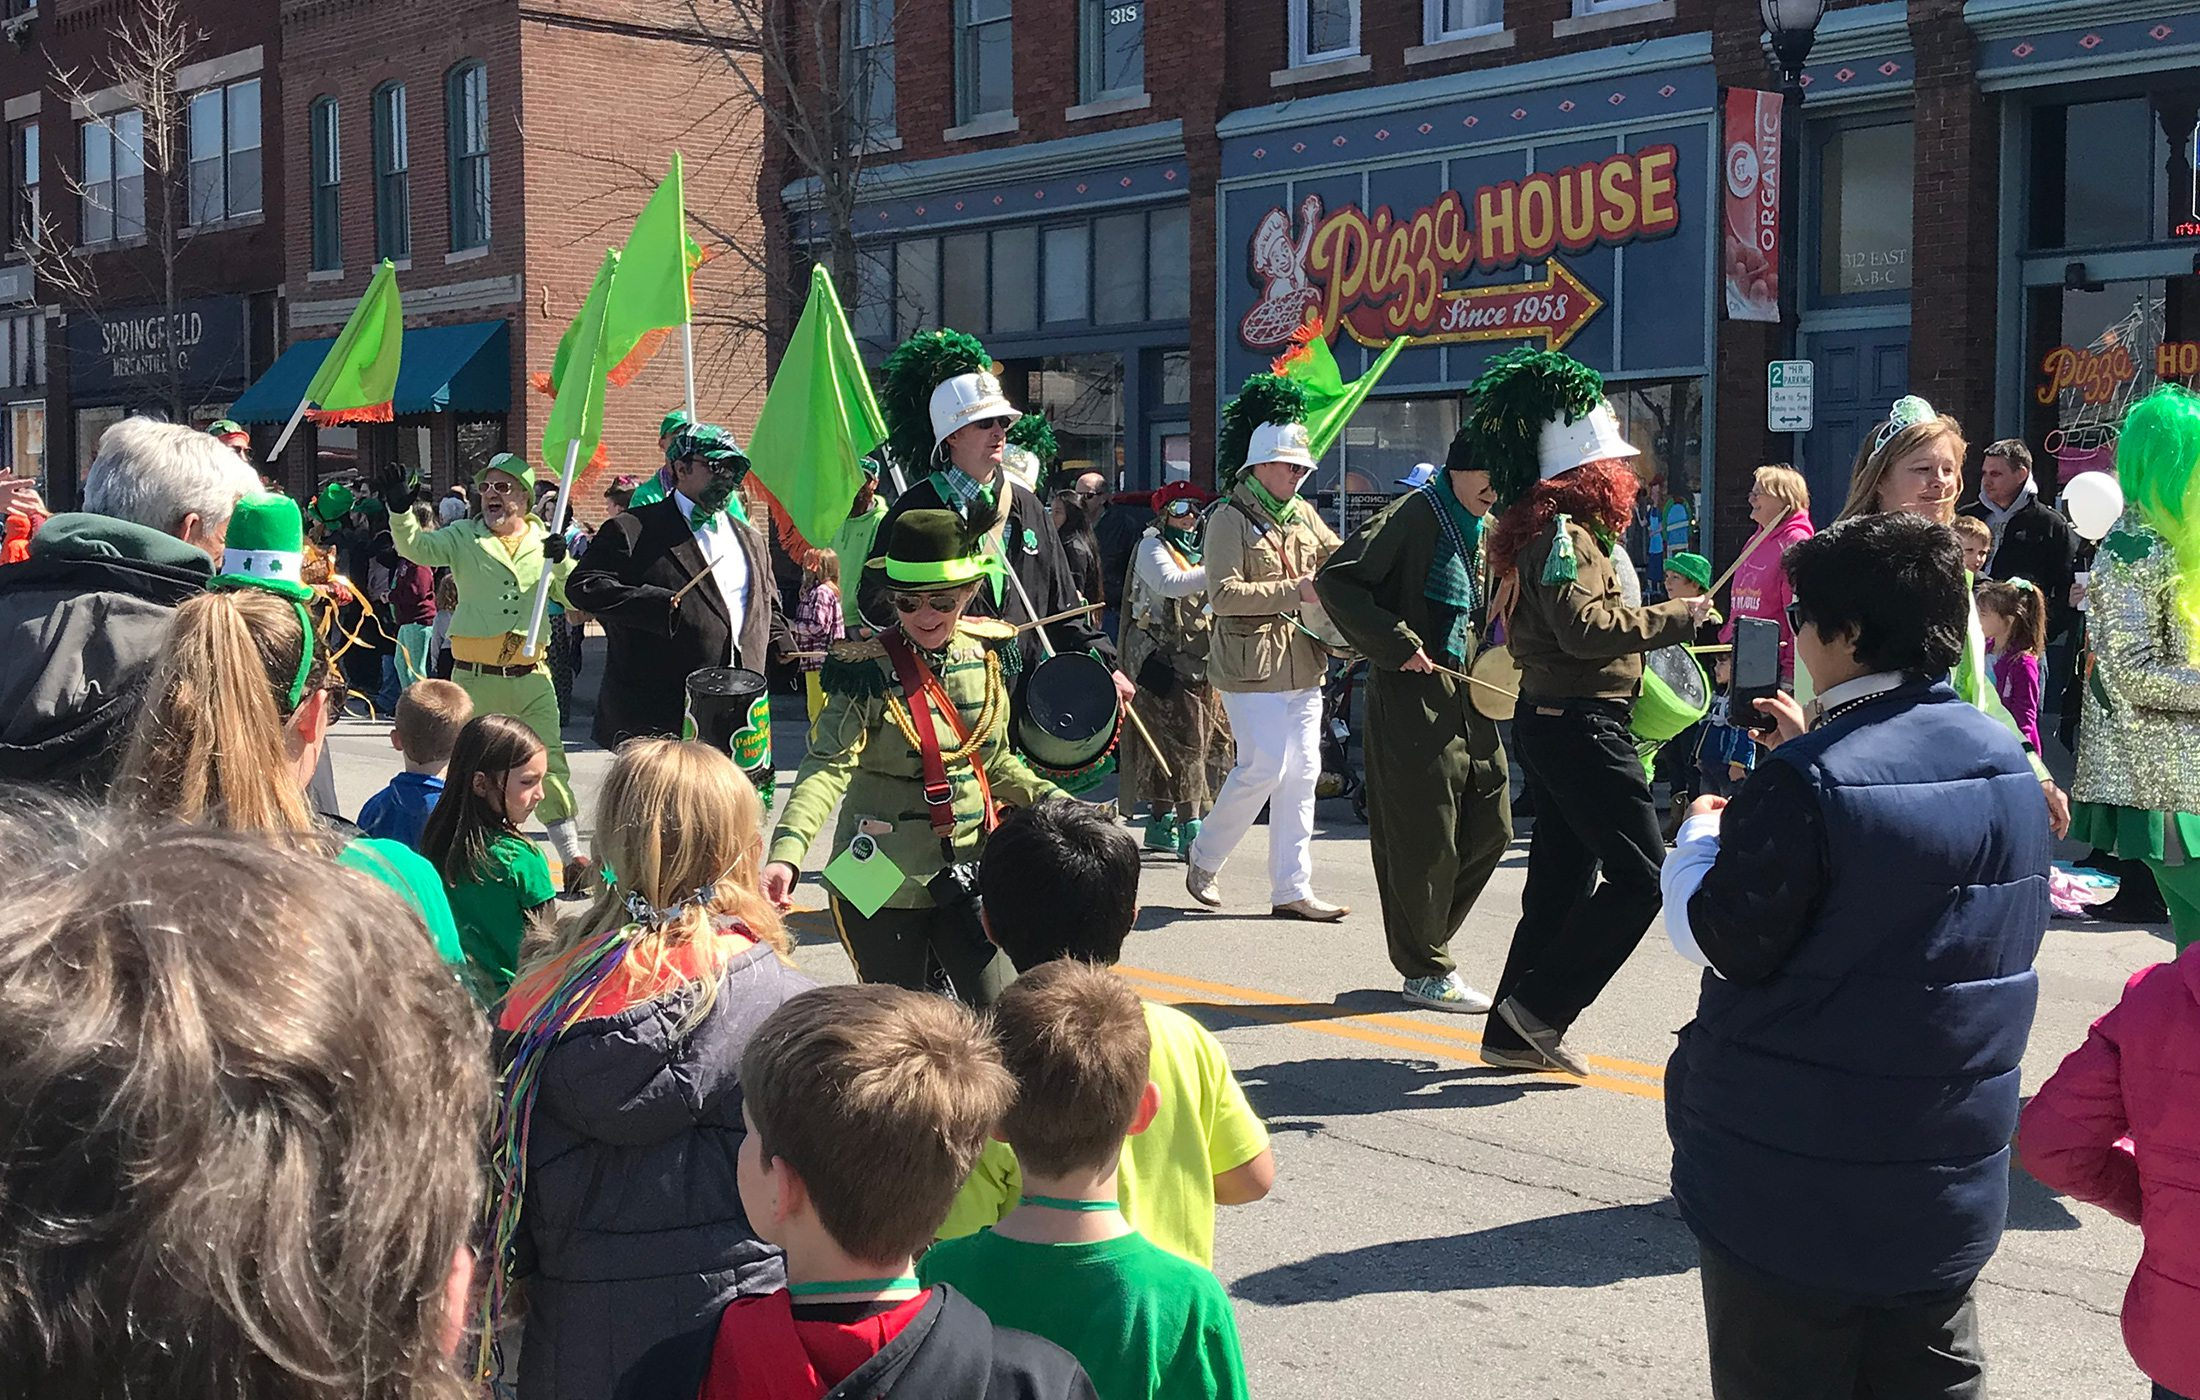 Saint Patrick's Day in Springfield MO